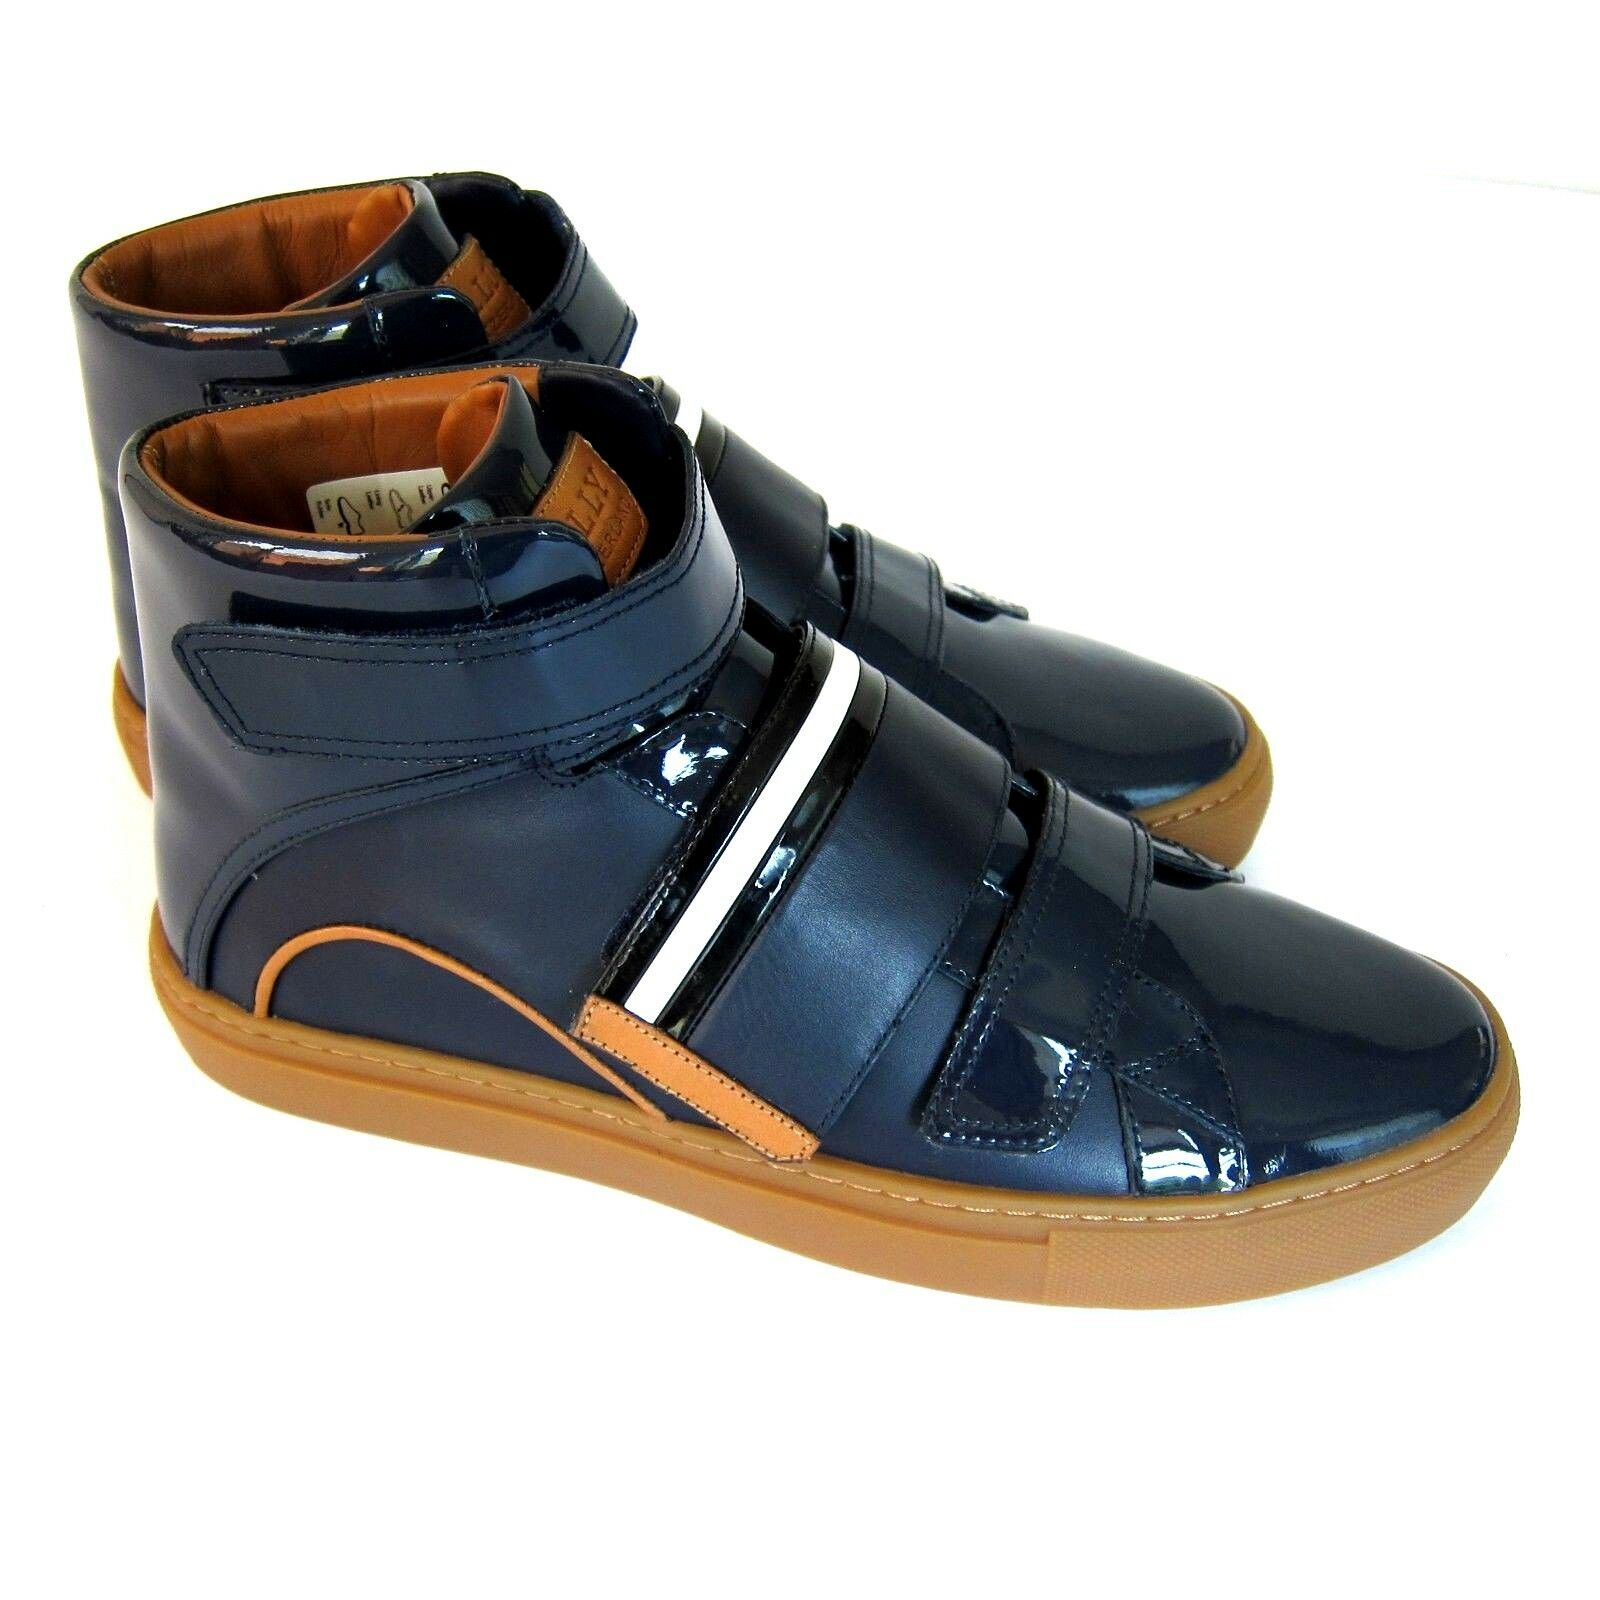 J-3481200 New Bally Herick Leather bluee Sneakers shoes Size US 8 Marked 7